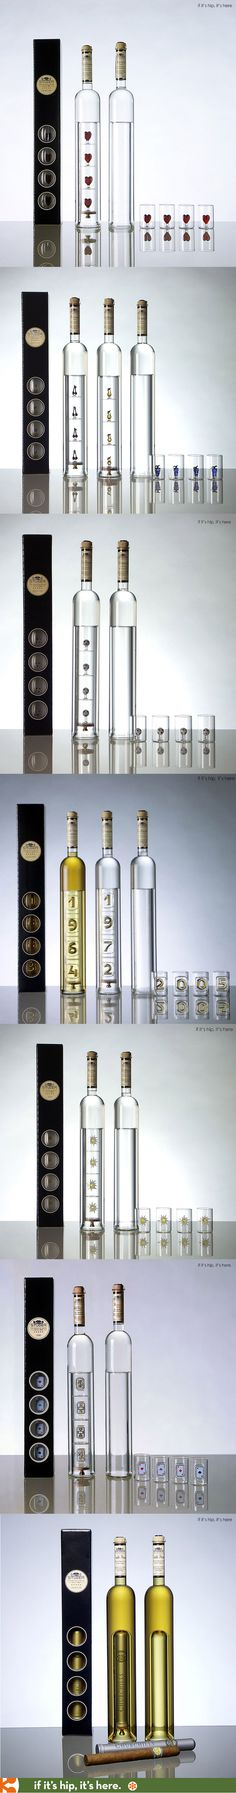 The Geschenkartikel collection from Studer consists of free-blown glass bottles of Grappa, Williams and Kirsch, that come with with 4 hand-crafted glasses that fit into the bottle in presentation boxes.   Choose from Heart, Fruit, Poker, Edelweiss, Anniversary, Football (Soccer) or the Special Cigar version that includes a removable handmade cigar from the Dominican Republic.